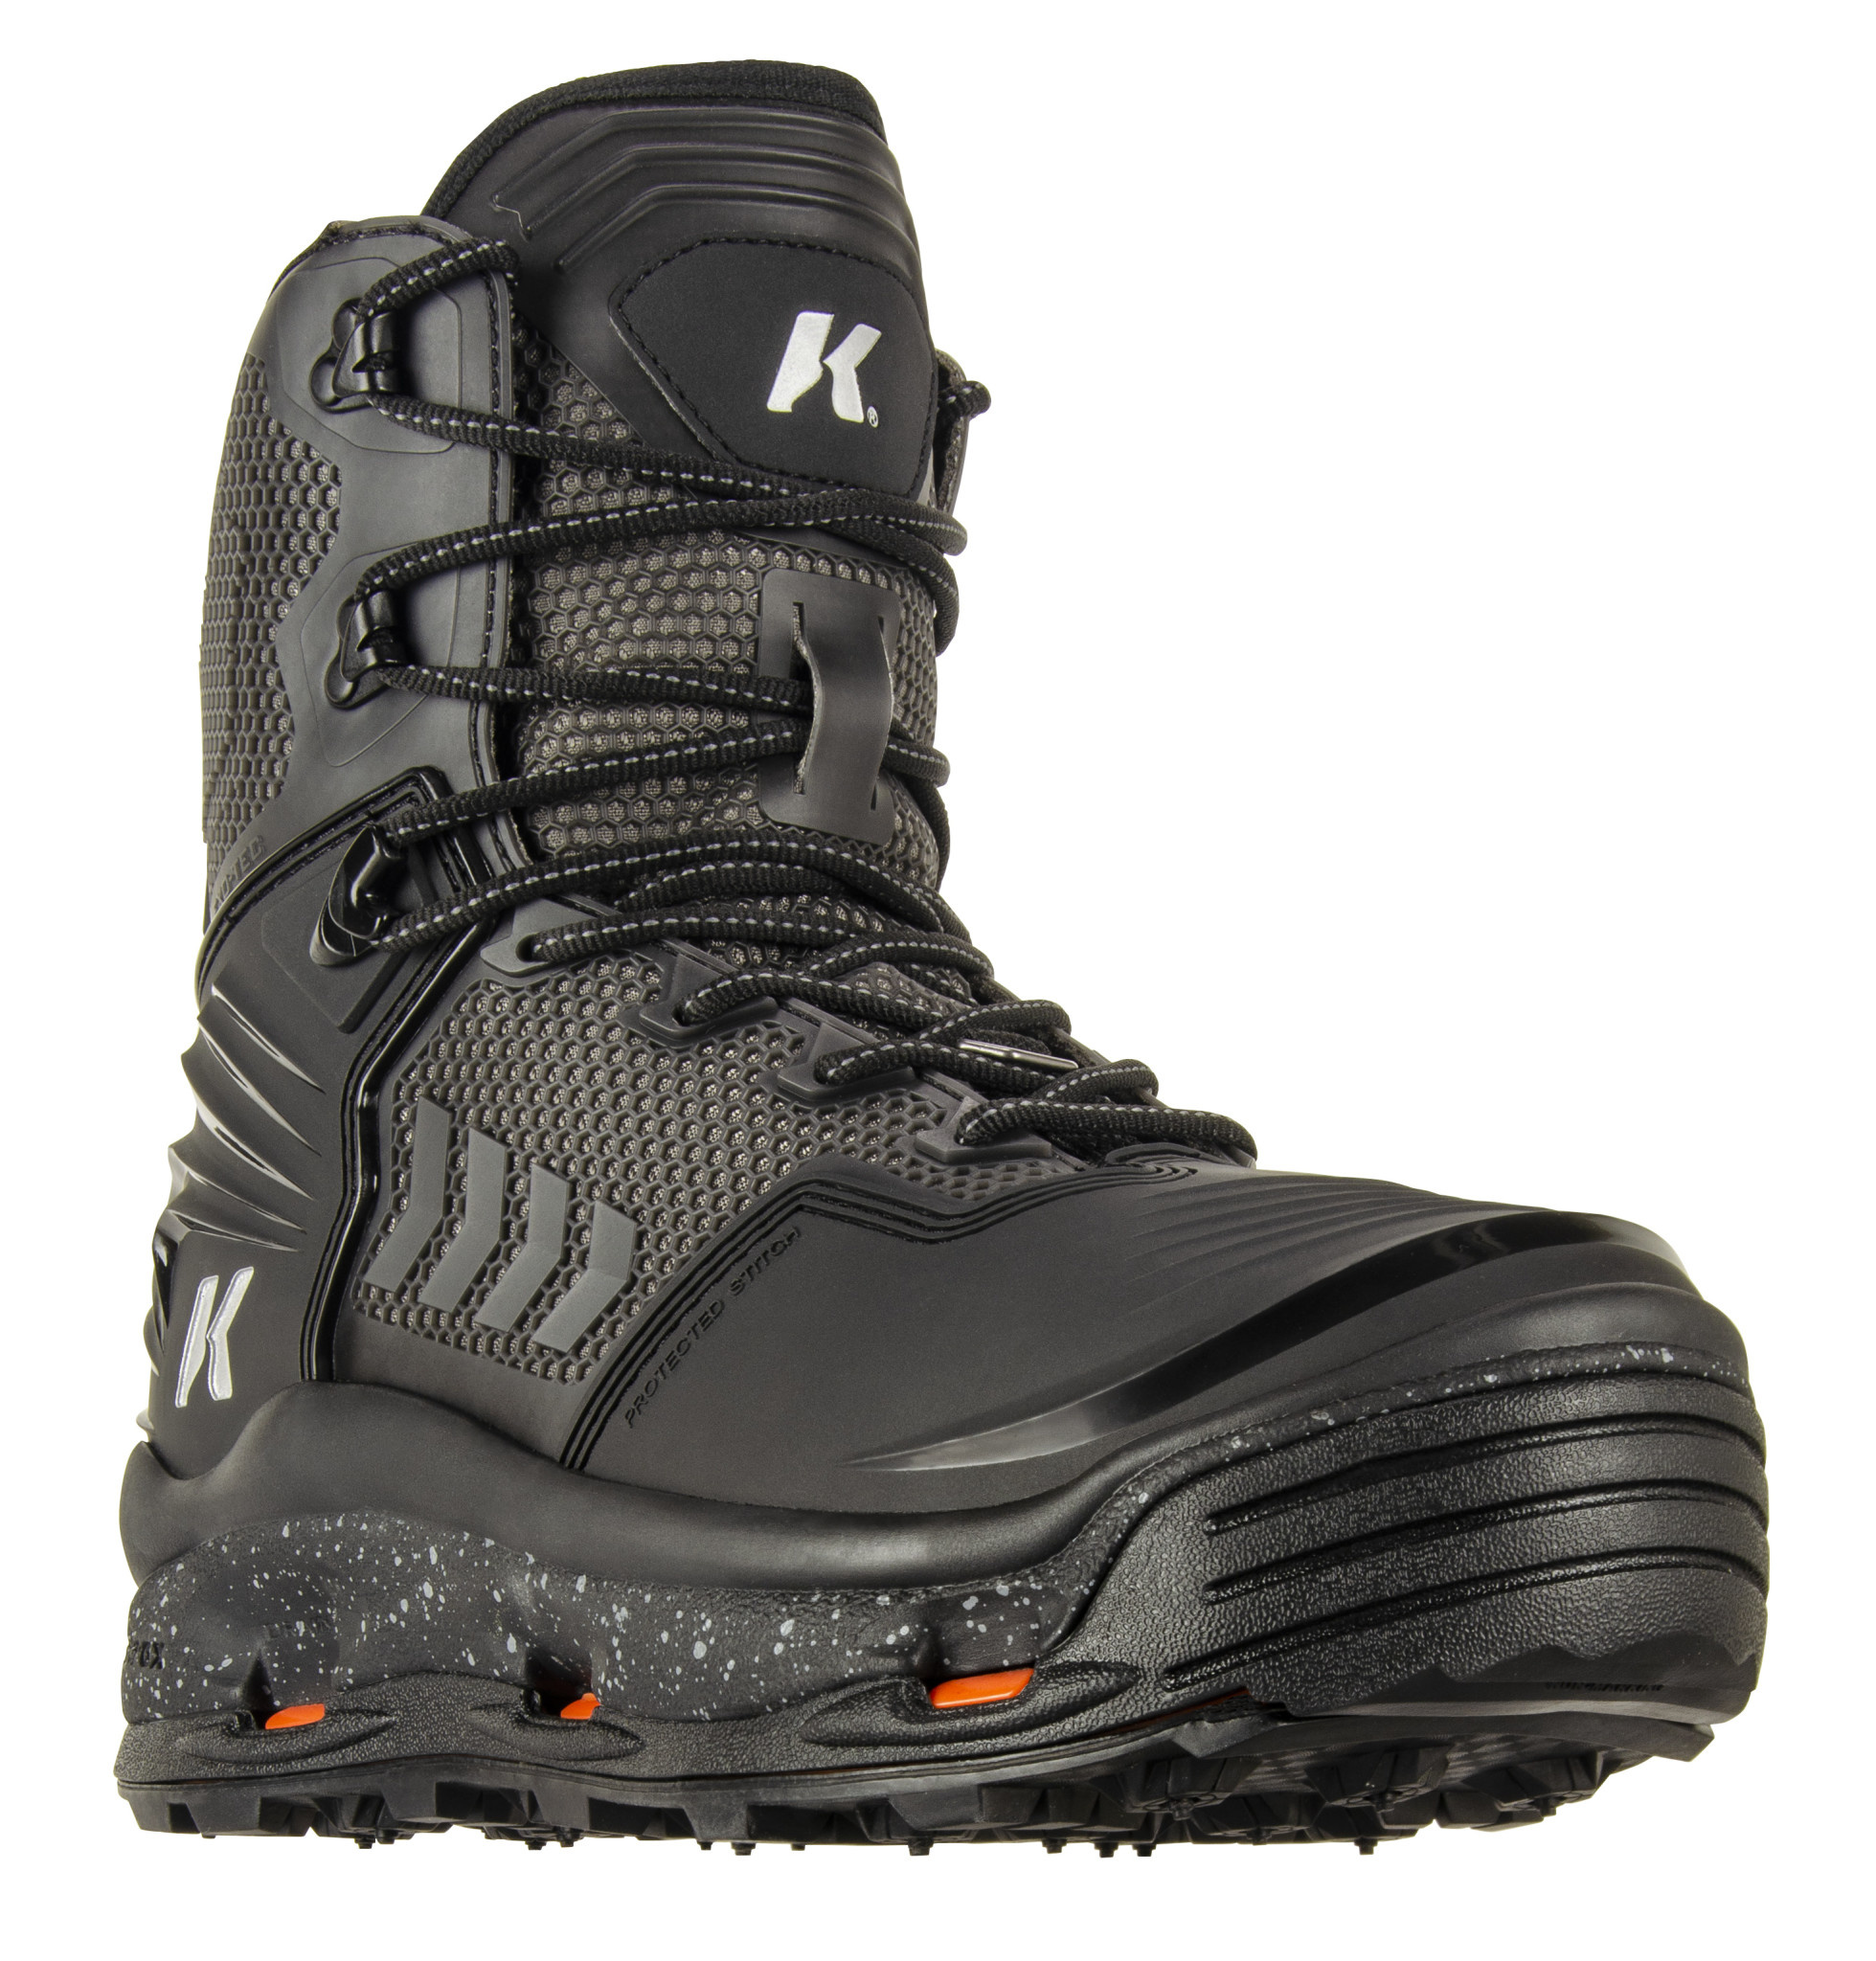 Korkers River Ops Boot with Felt and Vibram Soles